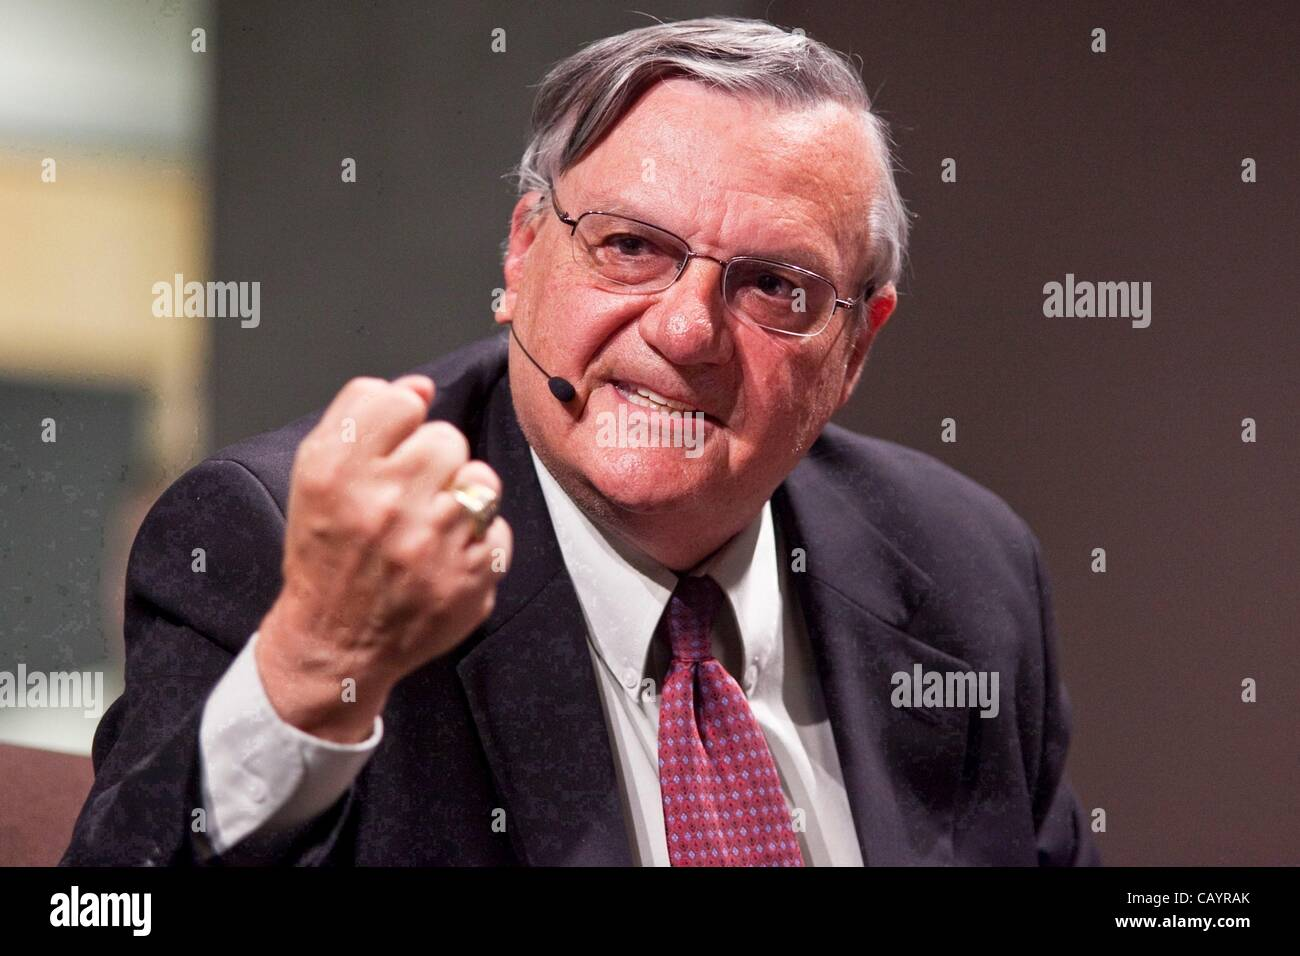 May 10, 2012 - The Department of Justice sued Maricopa County Sheriff Joe Arpaio and his Phoenix law enforcement - Stock Image